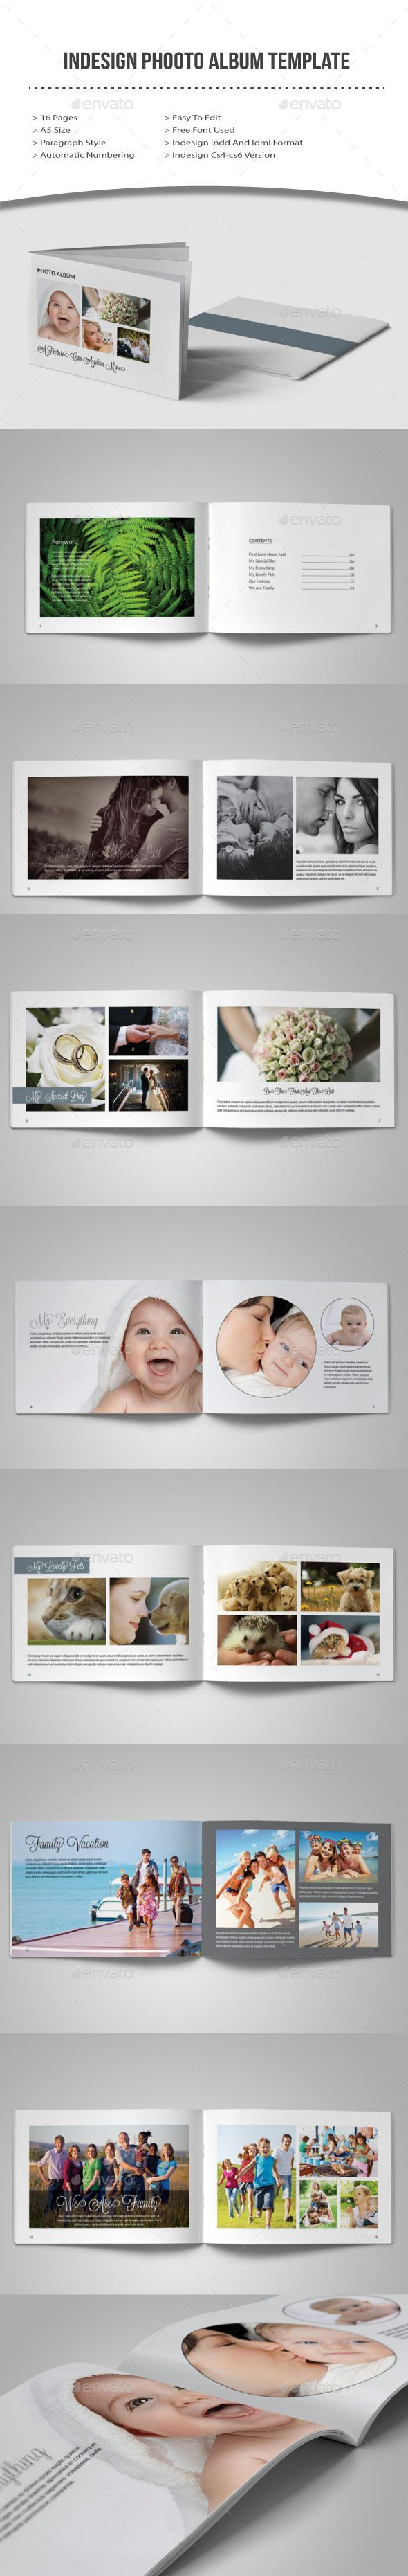 Indesign Photo Album Template | Template, Album and Photo album printing